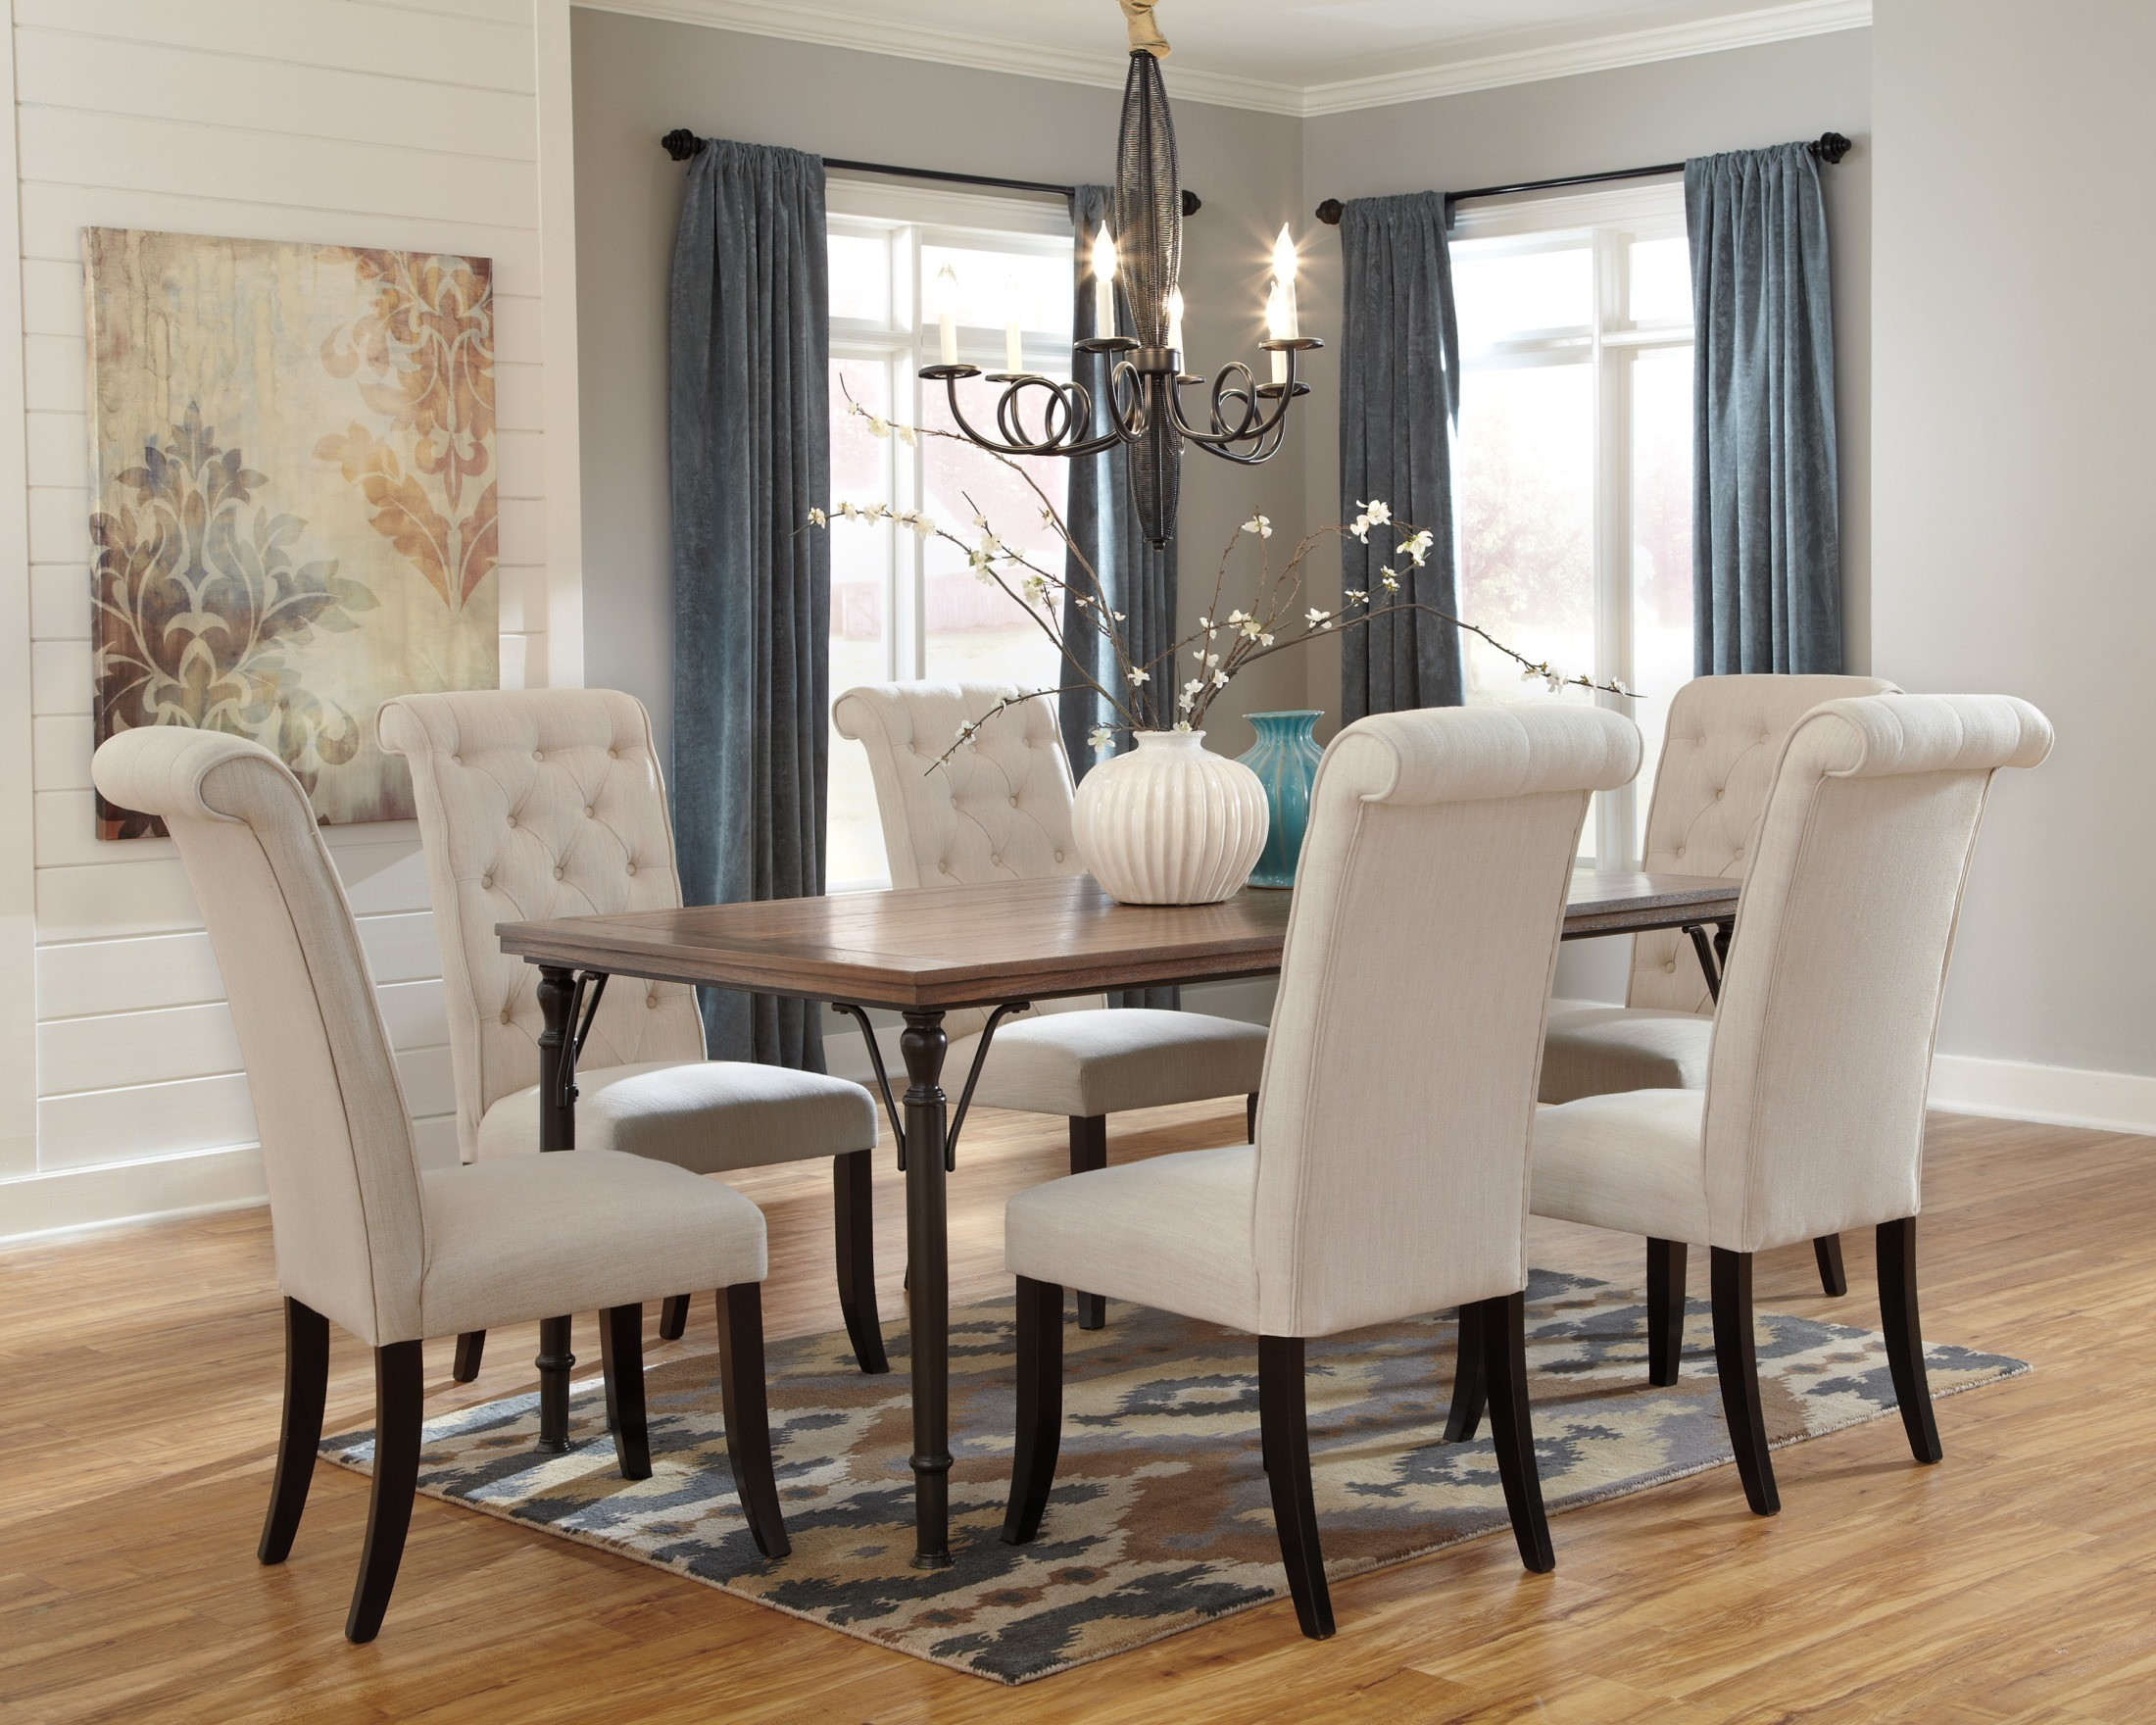 Ashley Dining Room Chairs Tripton Rectangular Dining Room Set From Ashley D530 25